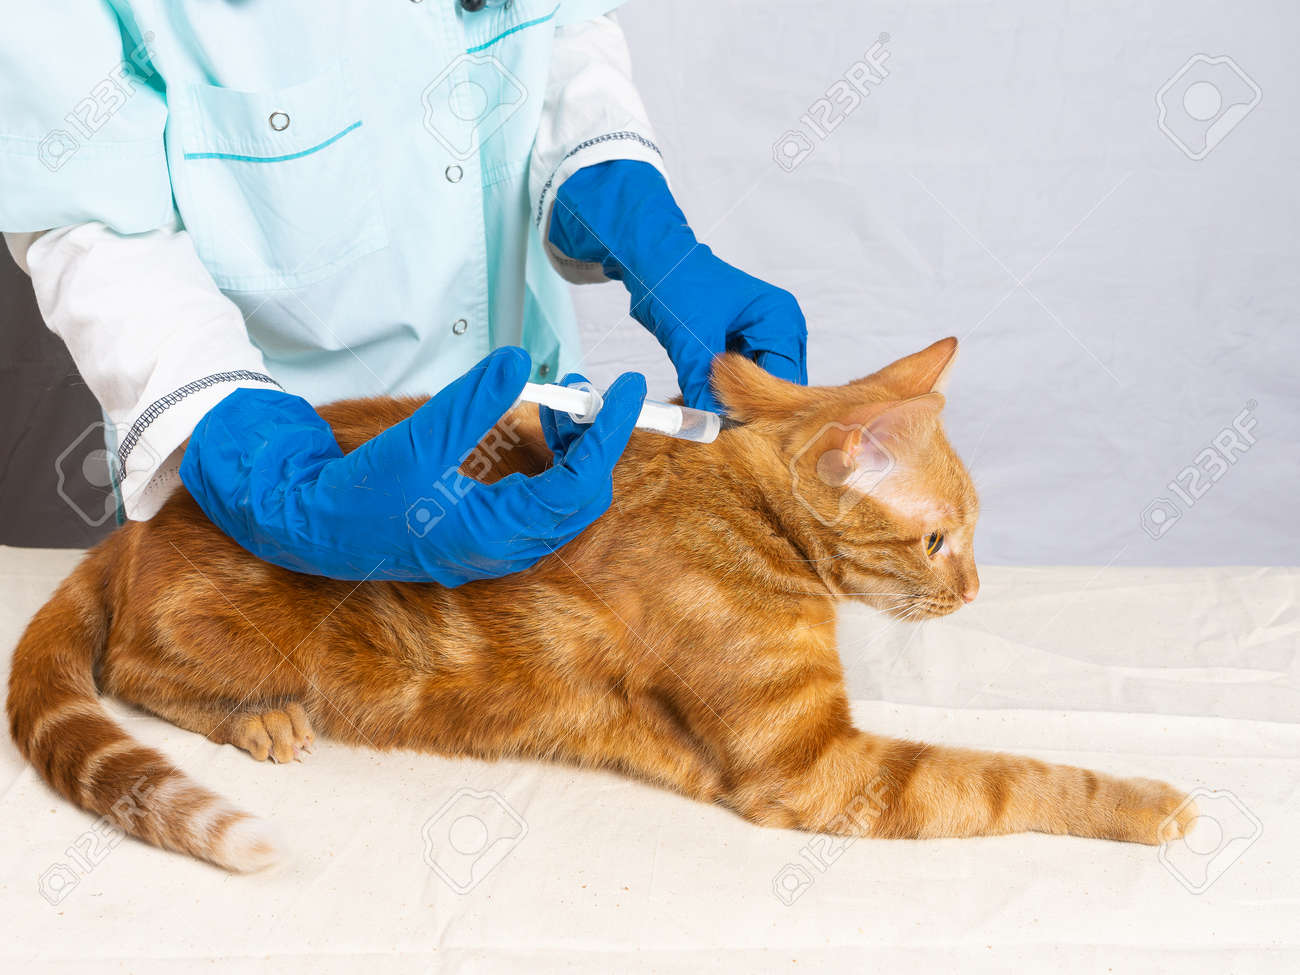 The veterinarian gives an injection to a bright red cat. Treatment of pets. - 171996149